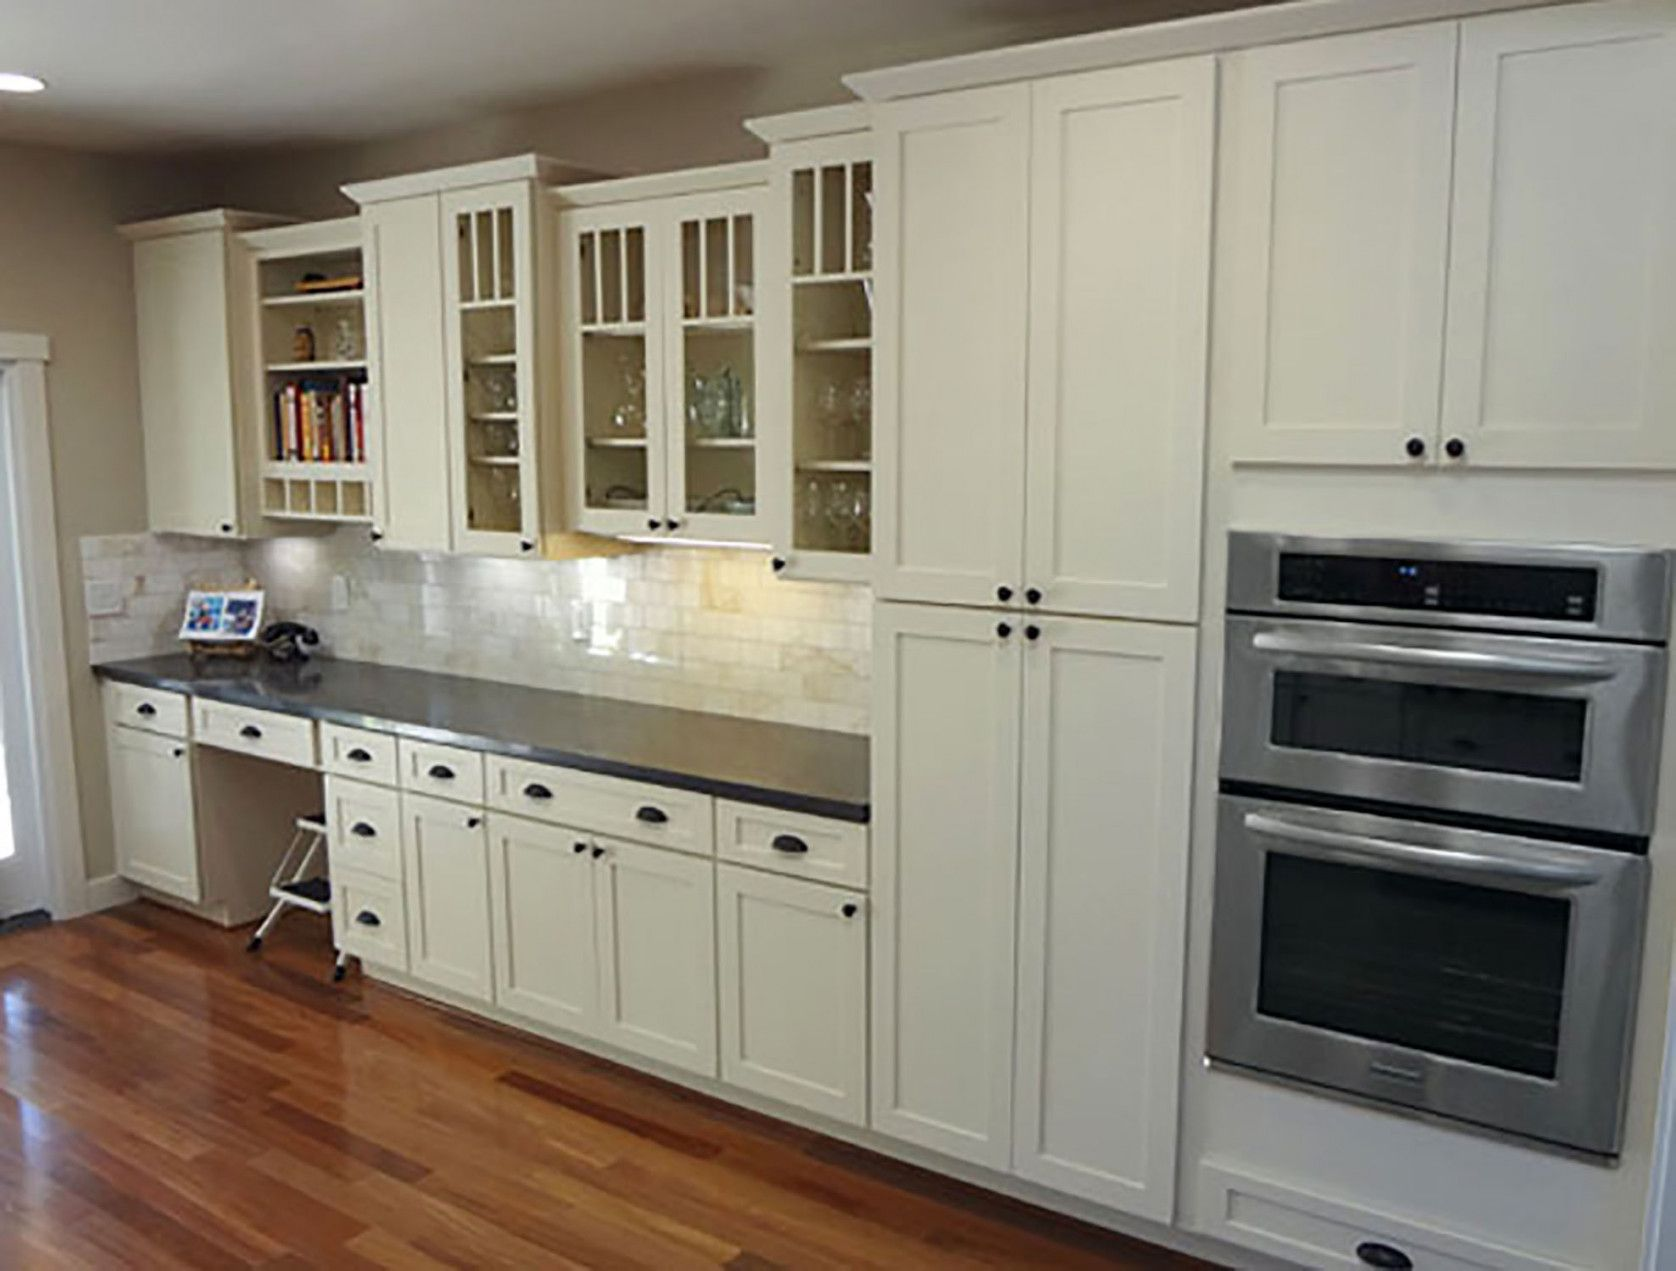 2018 Double Shaker Cabinet Doors Kitchen Cabinets Update Ideas On A Budget Check Mo Kitchen Cabinet Styles White Shaker Kitchen Contemporary Kitchen Cabinets